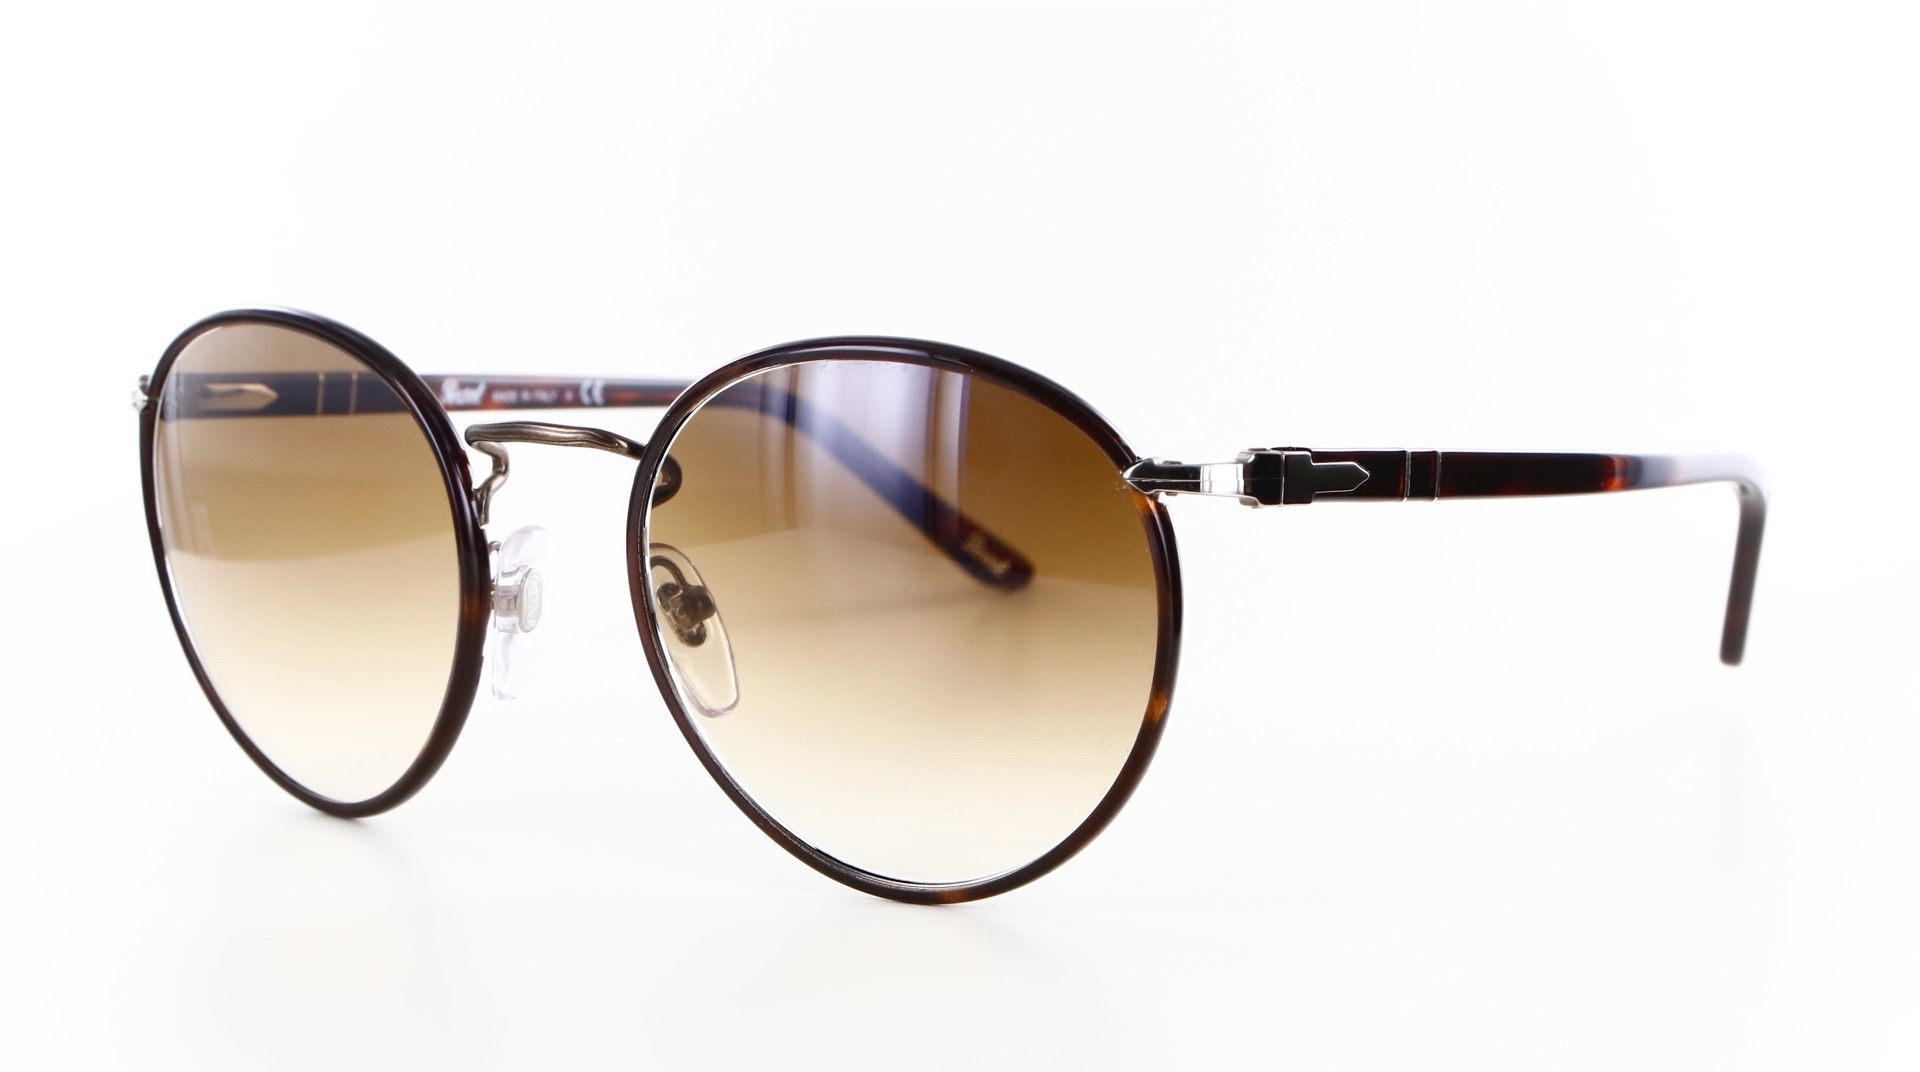 Persol - ref: 77885